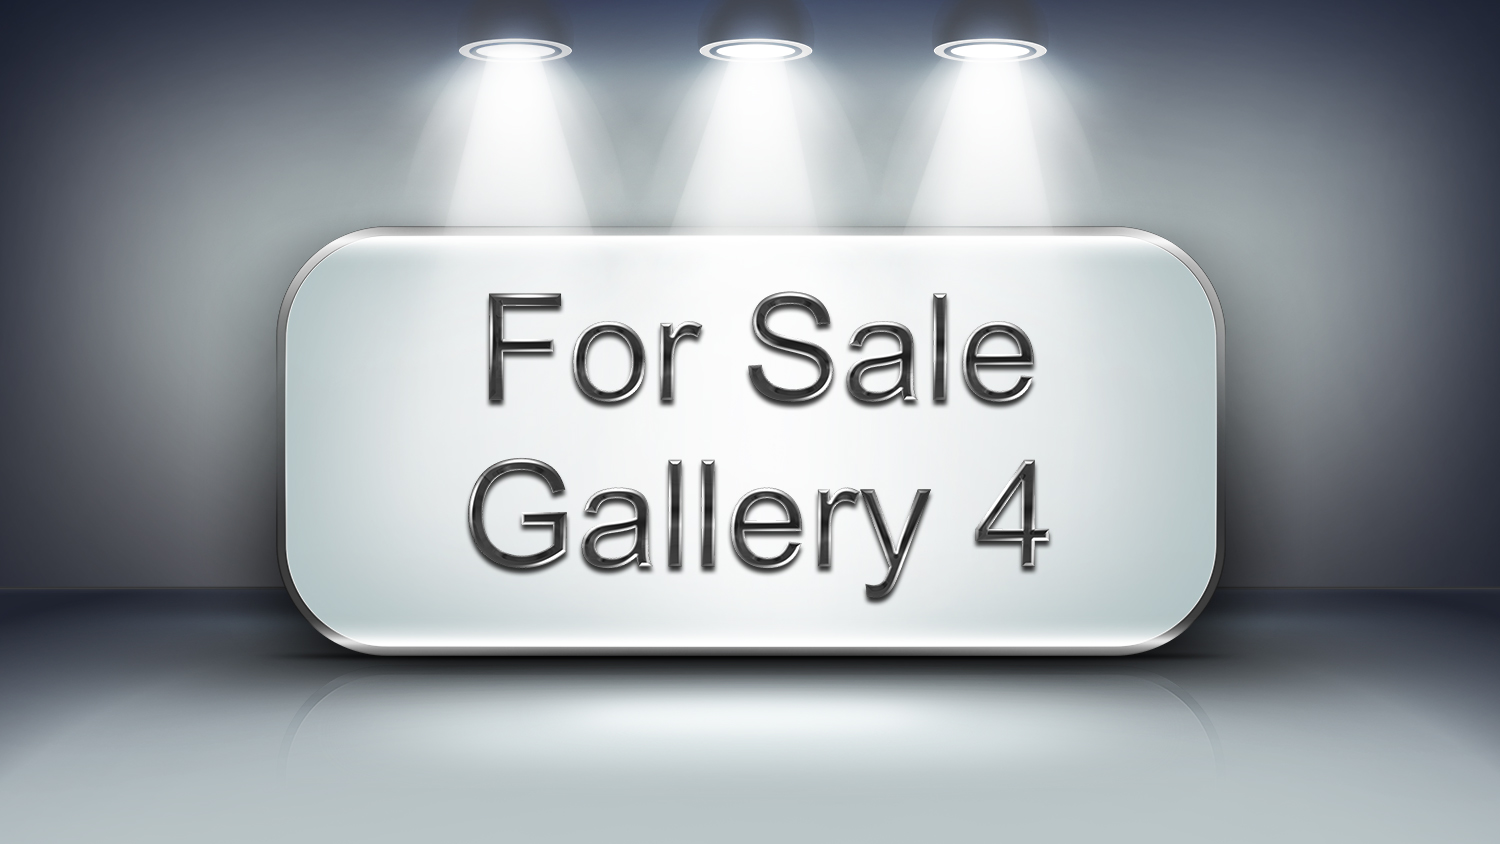 For Sale Gallery 4